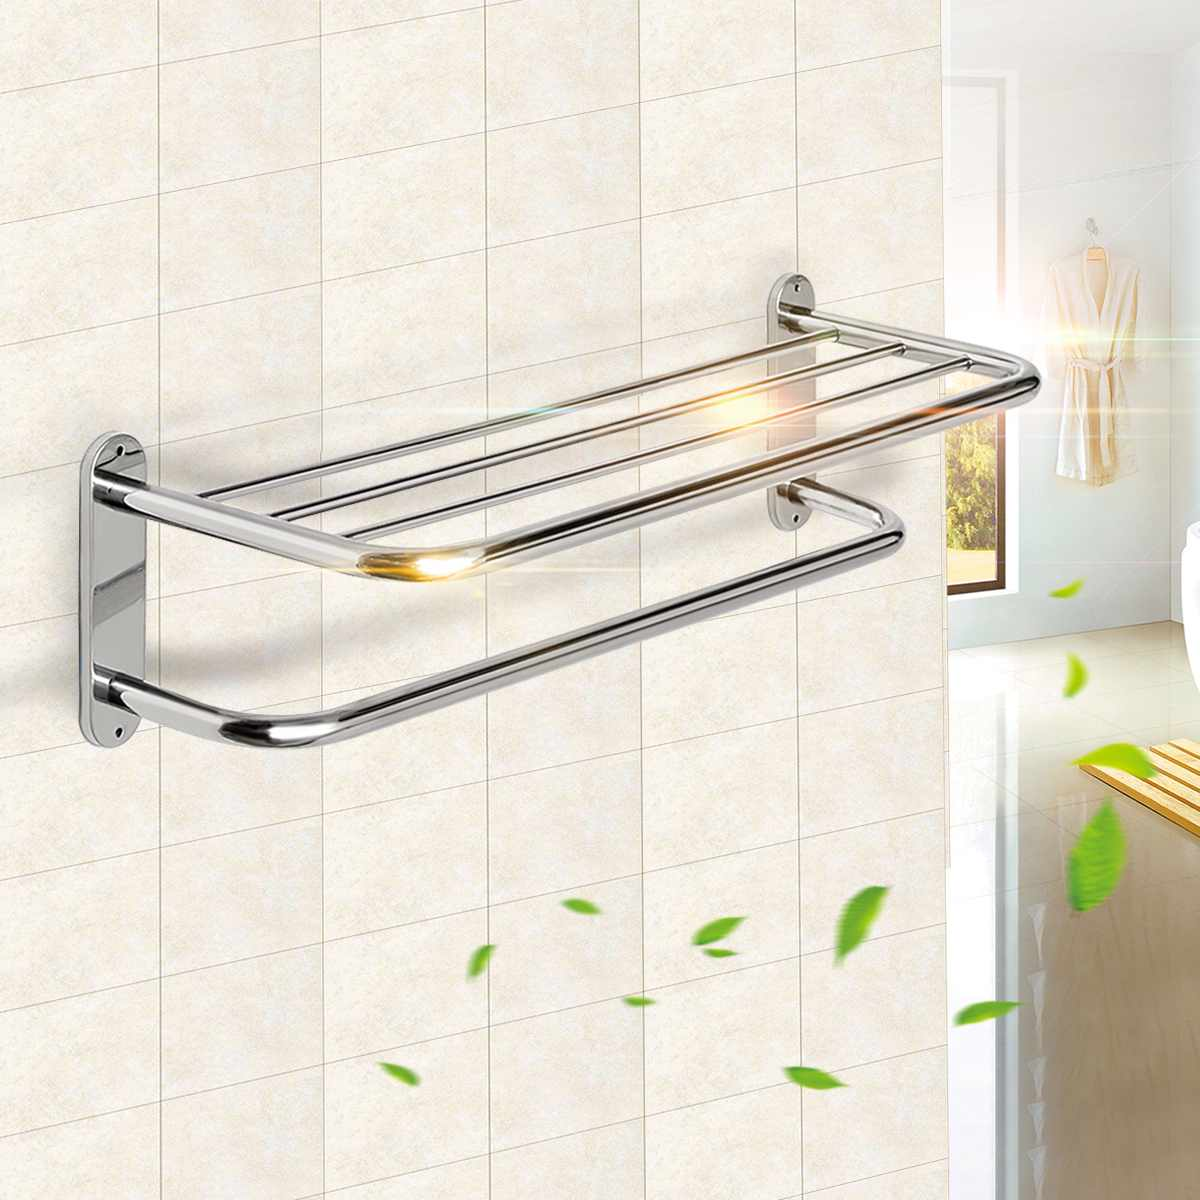 Xueqin 60cm Chrome Polished Double Towel Rails Bar Stainless Steel Bathroom Wall Mounted Towel Rail Holder Shelf Storage Rack